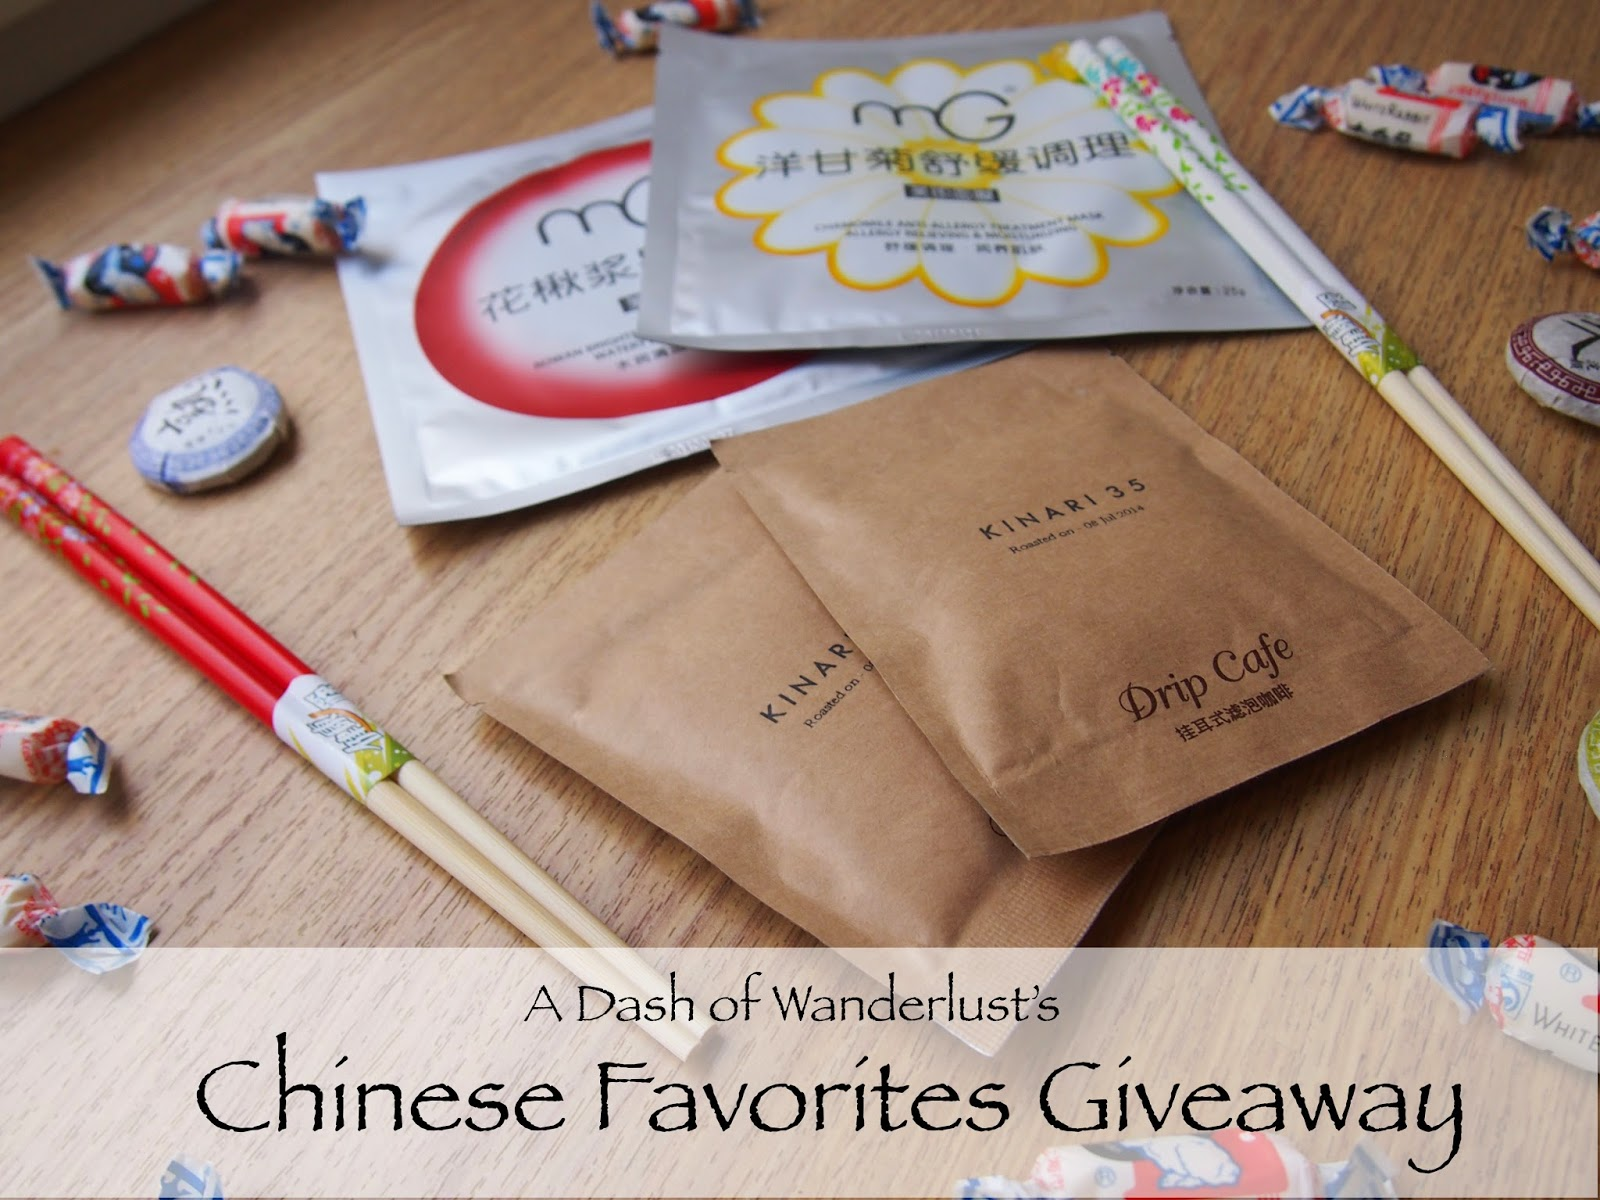 Chinese Favorites Giveaway by A Dash of Wanderlust